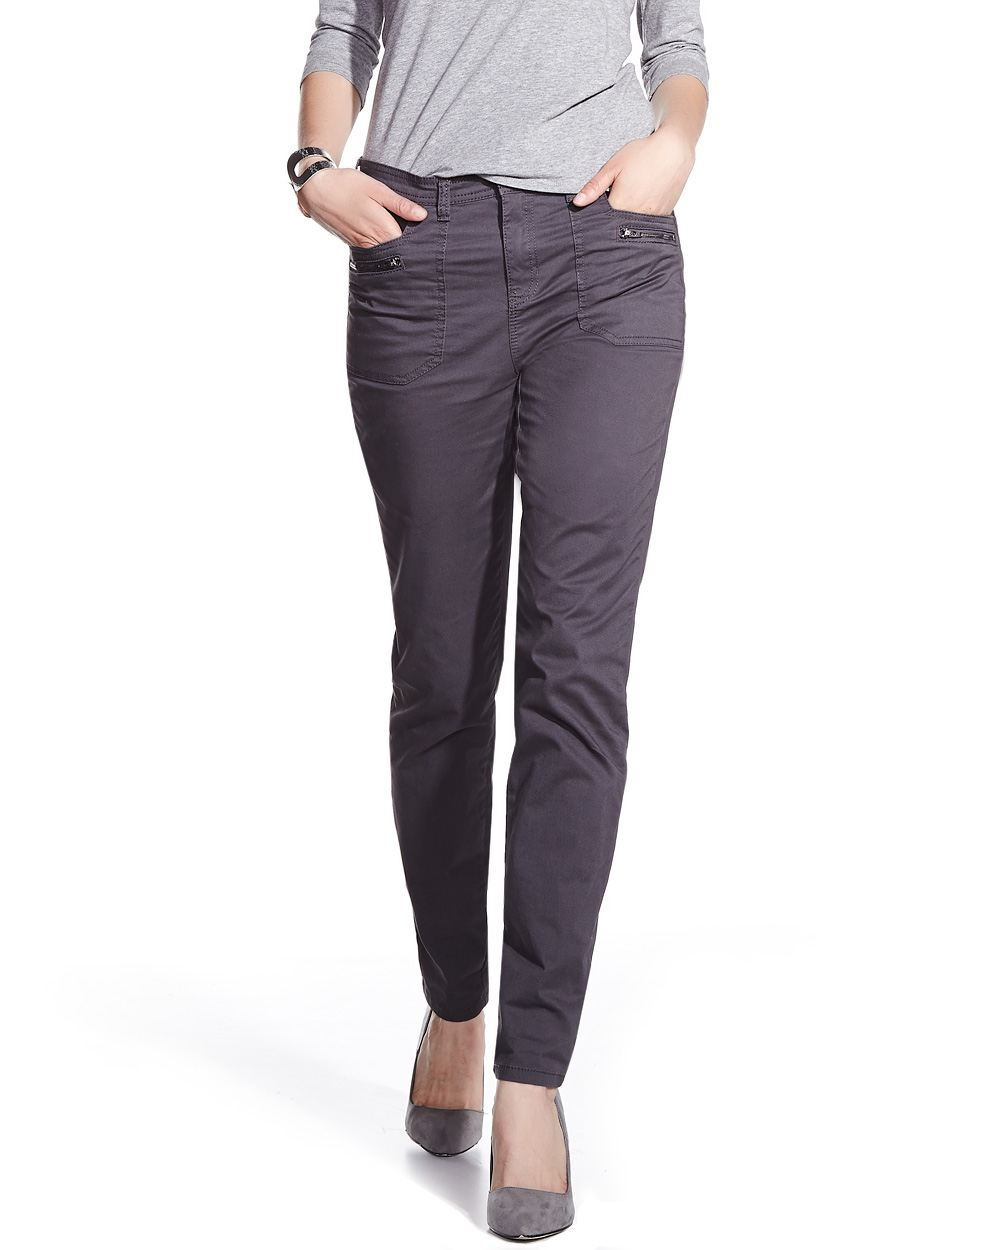 Shop for Pants for Tall Women at Lands' End. Find a variety of stylish capris, crops, dress pants, chinos, workout pants and more for tall women.